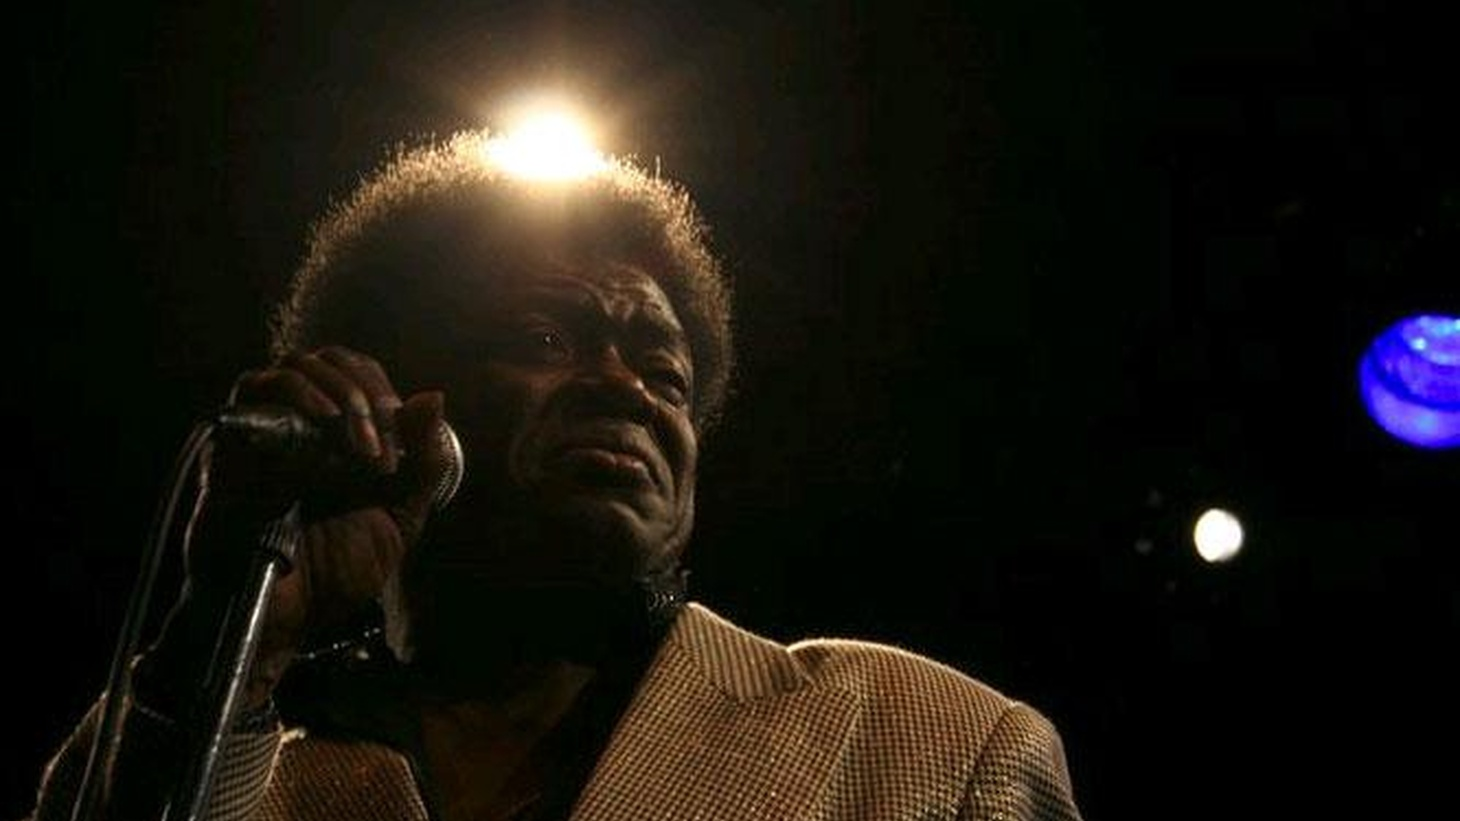 """Charles Bradley has paid his dues. The soul singer spent many years working as a chef while he fed his musical cravings as an occasional sideman on recording sessions. Down and out, his luck changed when Gabriel Roth of Daptone Records caught his act in a Brooklyn club not long ago. At 62, Bradley's full-length debut is finally out and from it we offer the title track, """"No Time for Dreaming,"""" as Today's Top Tune."""